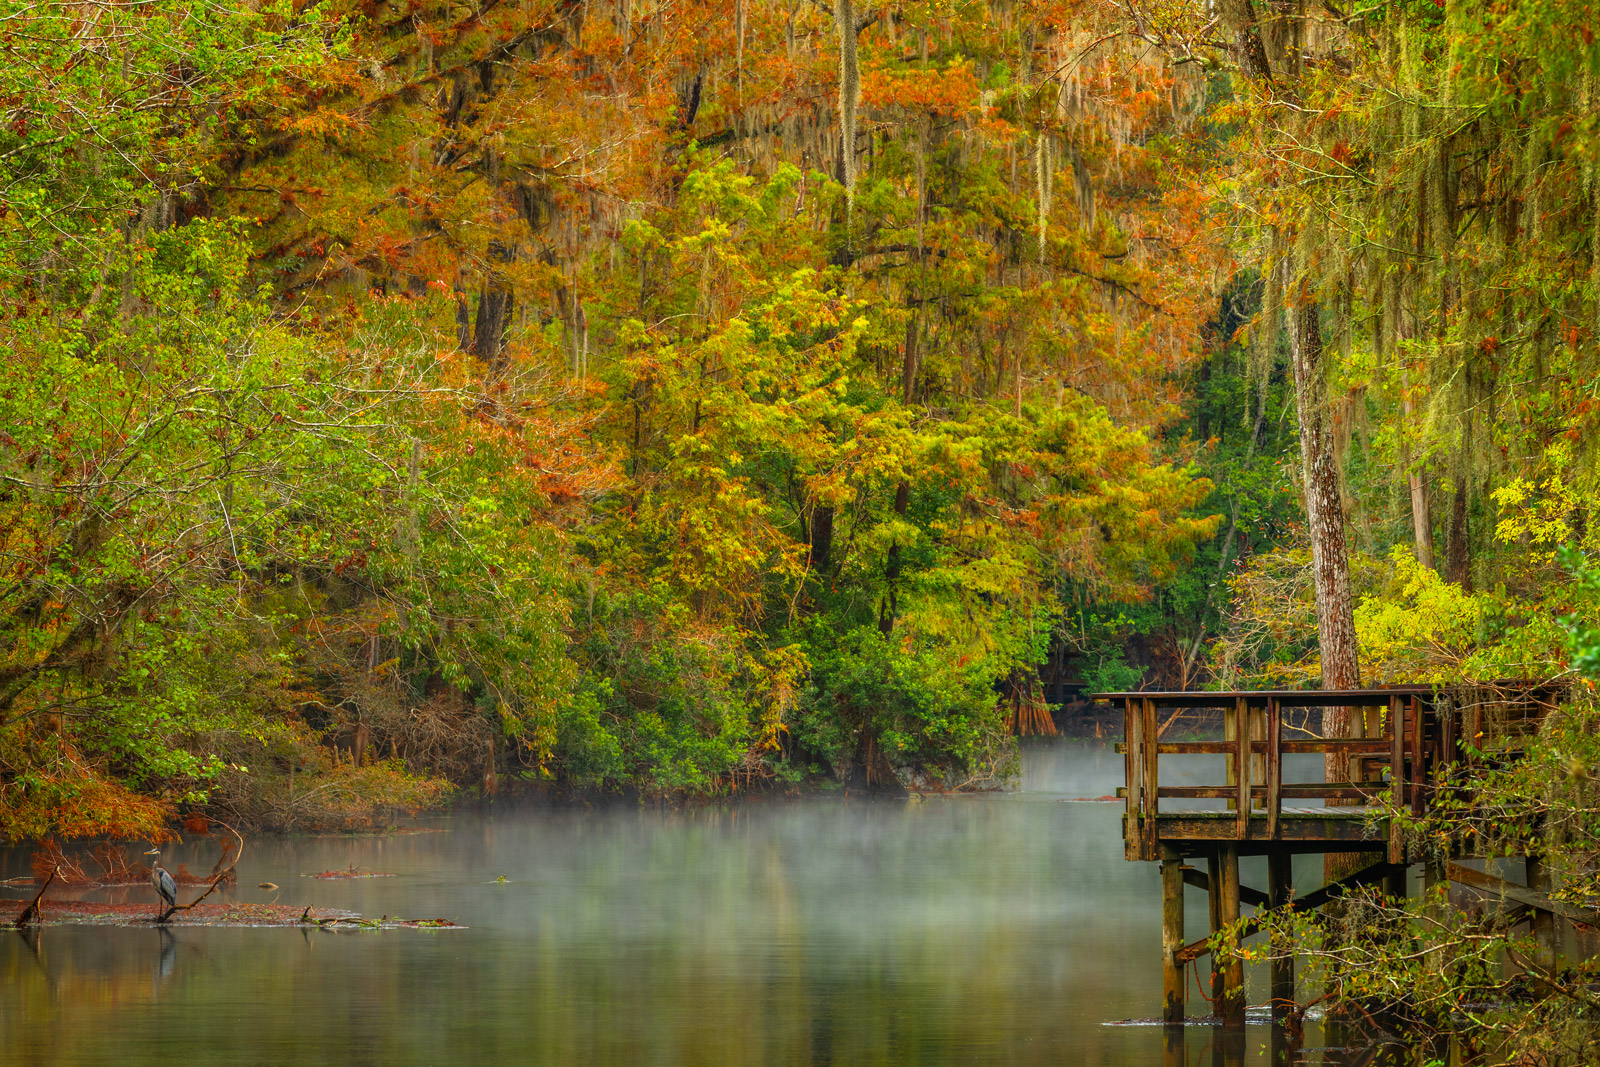 Florida, Manatee Springs, River, Fall, Color, Fog, limited edition, photograph, fine art, landscape, fall color, photo